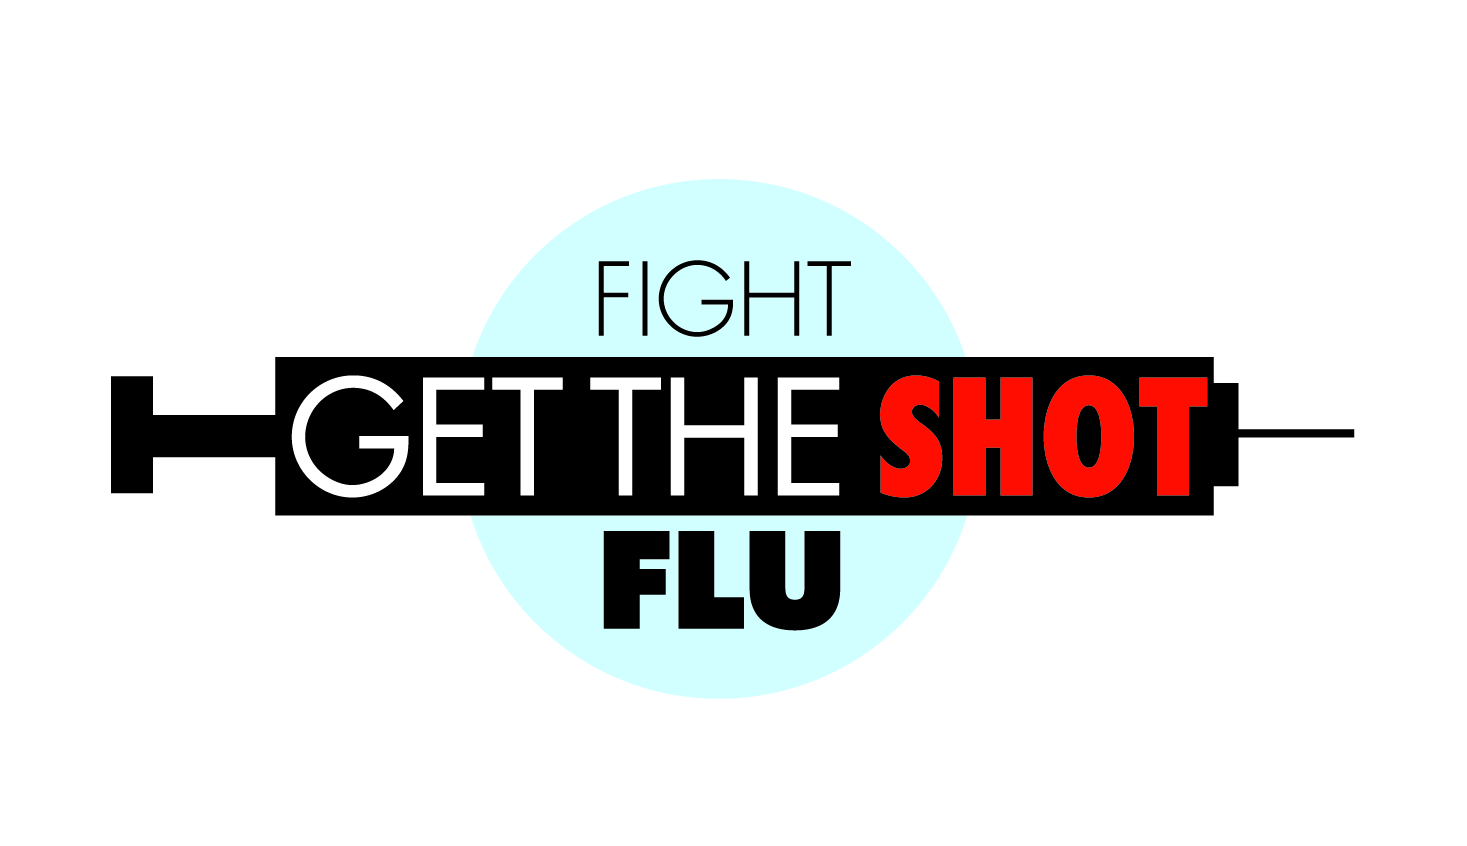 Clip Art Flu Shot Clipart flu shot clip art clipart best vaccination bug shot